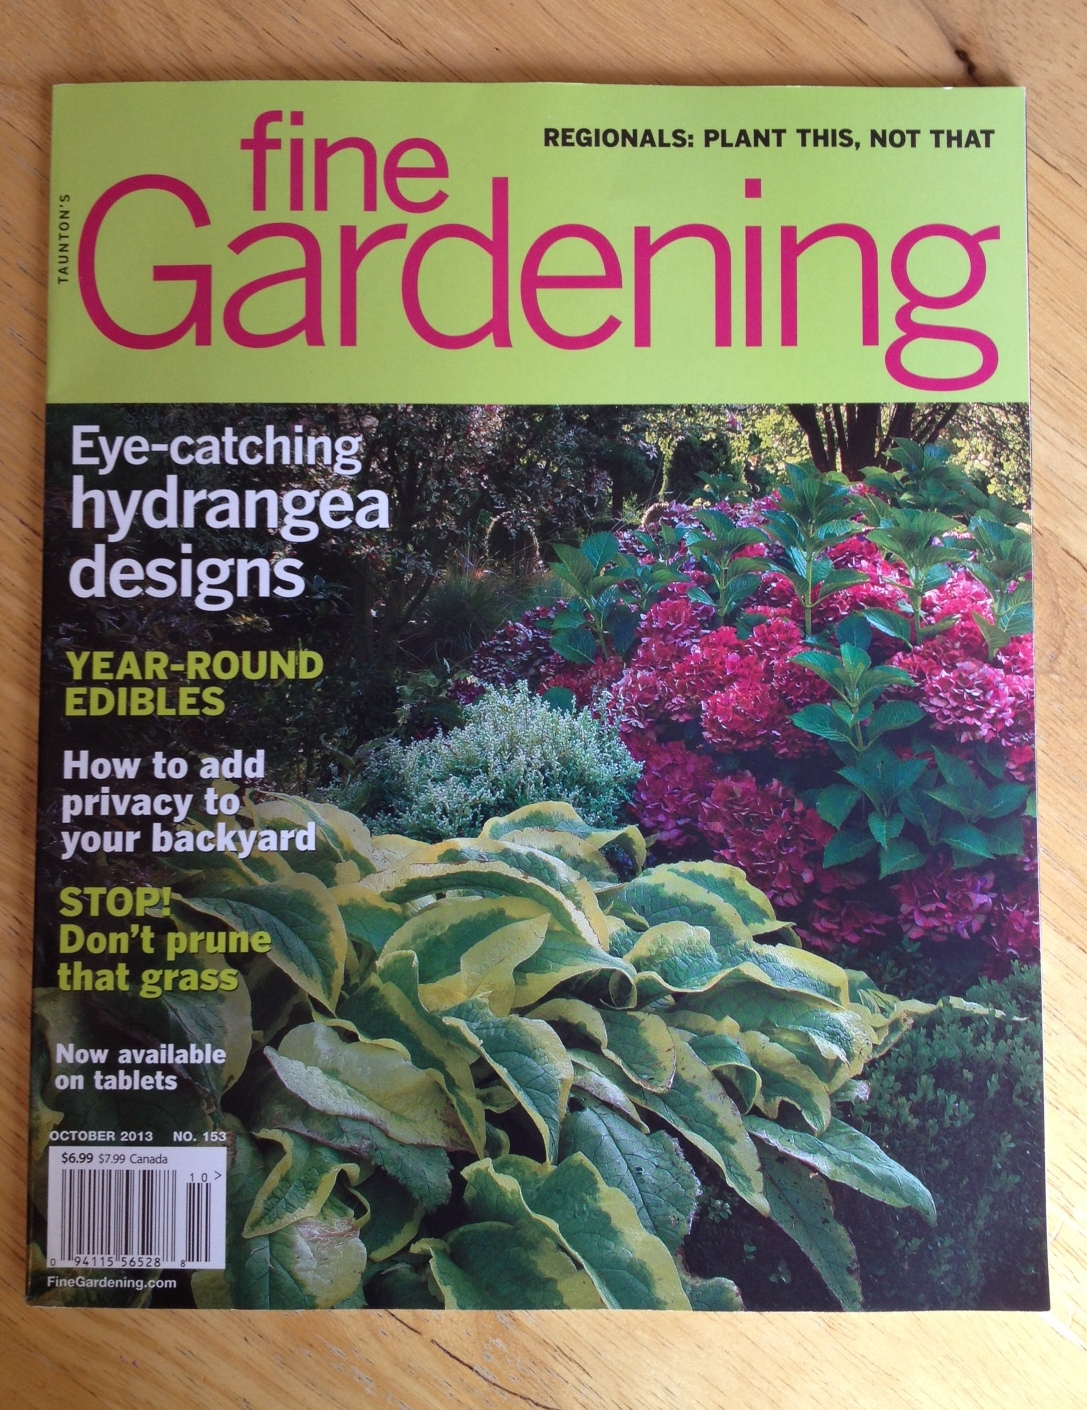 Yep, I Finally Managed To Get Into Print At One Of Americau0027s Top Gardening  Publications, Fine Gardening. A While Back I Submitted A Piece That Was  Accepted ...